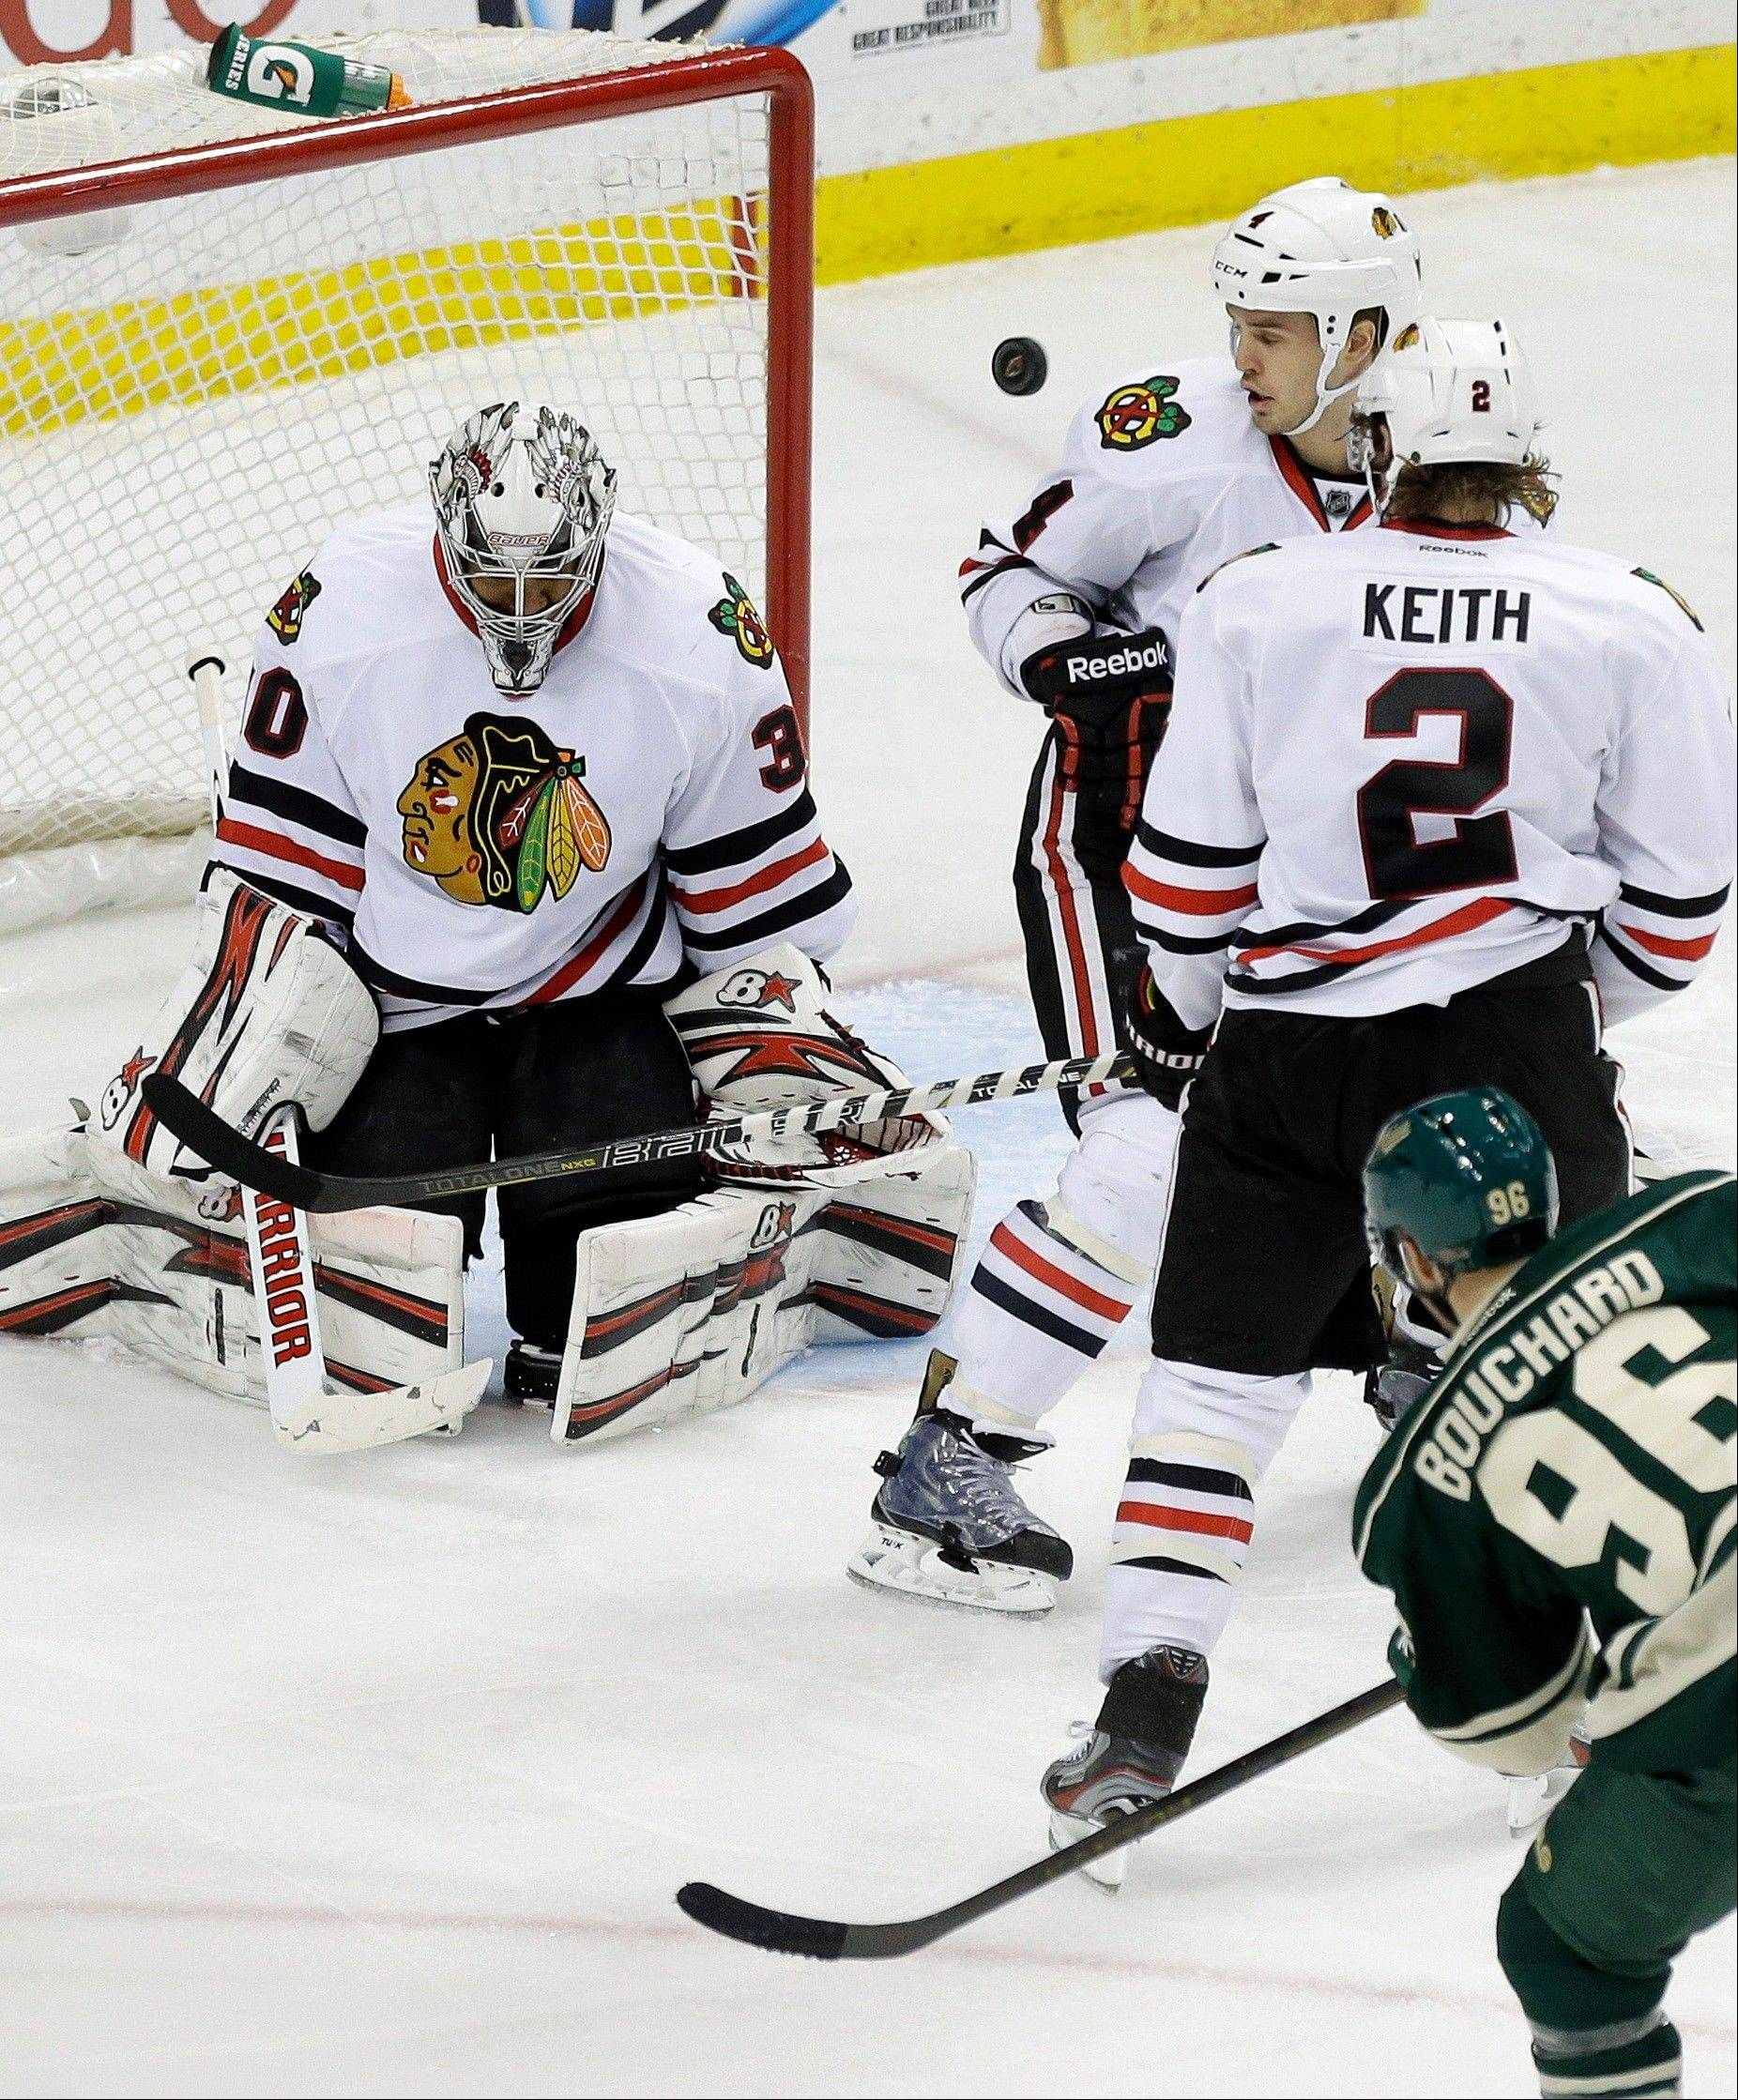 Ray Emery deflects a shot by Minnesota Wild's Pierre-Marc Bouchard, right, as the Hawks' Duncan Keith (2) and Niklas Hjalmarsson of Sweden watch in the third period.